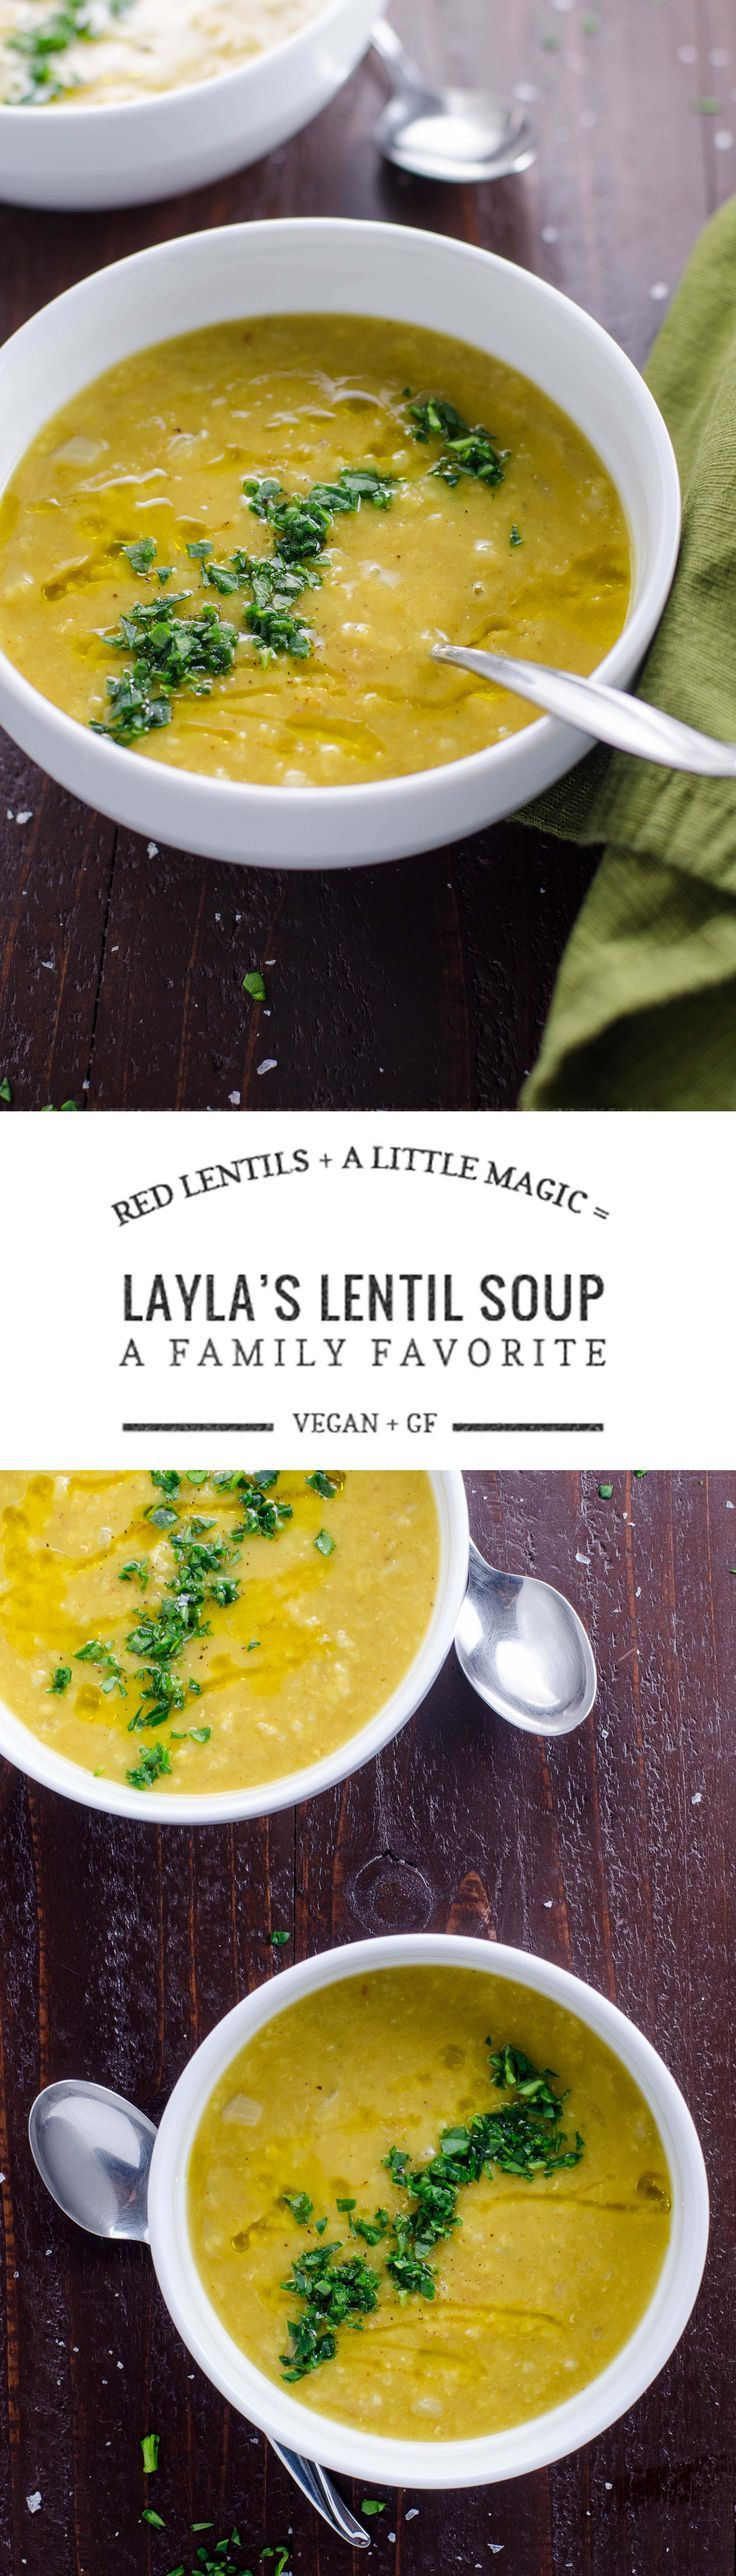 We've been eating my friend Layla's easy vegetarian red lentil soup for 20 years. It's great for you and wonderfully delicious. Vegan and gluten free.